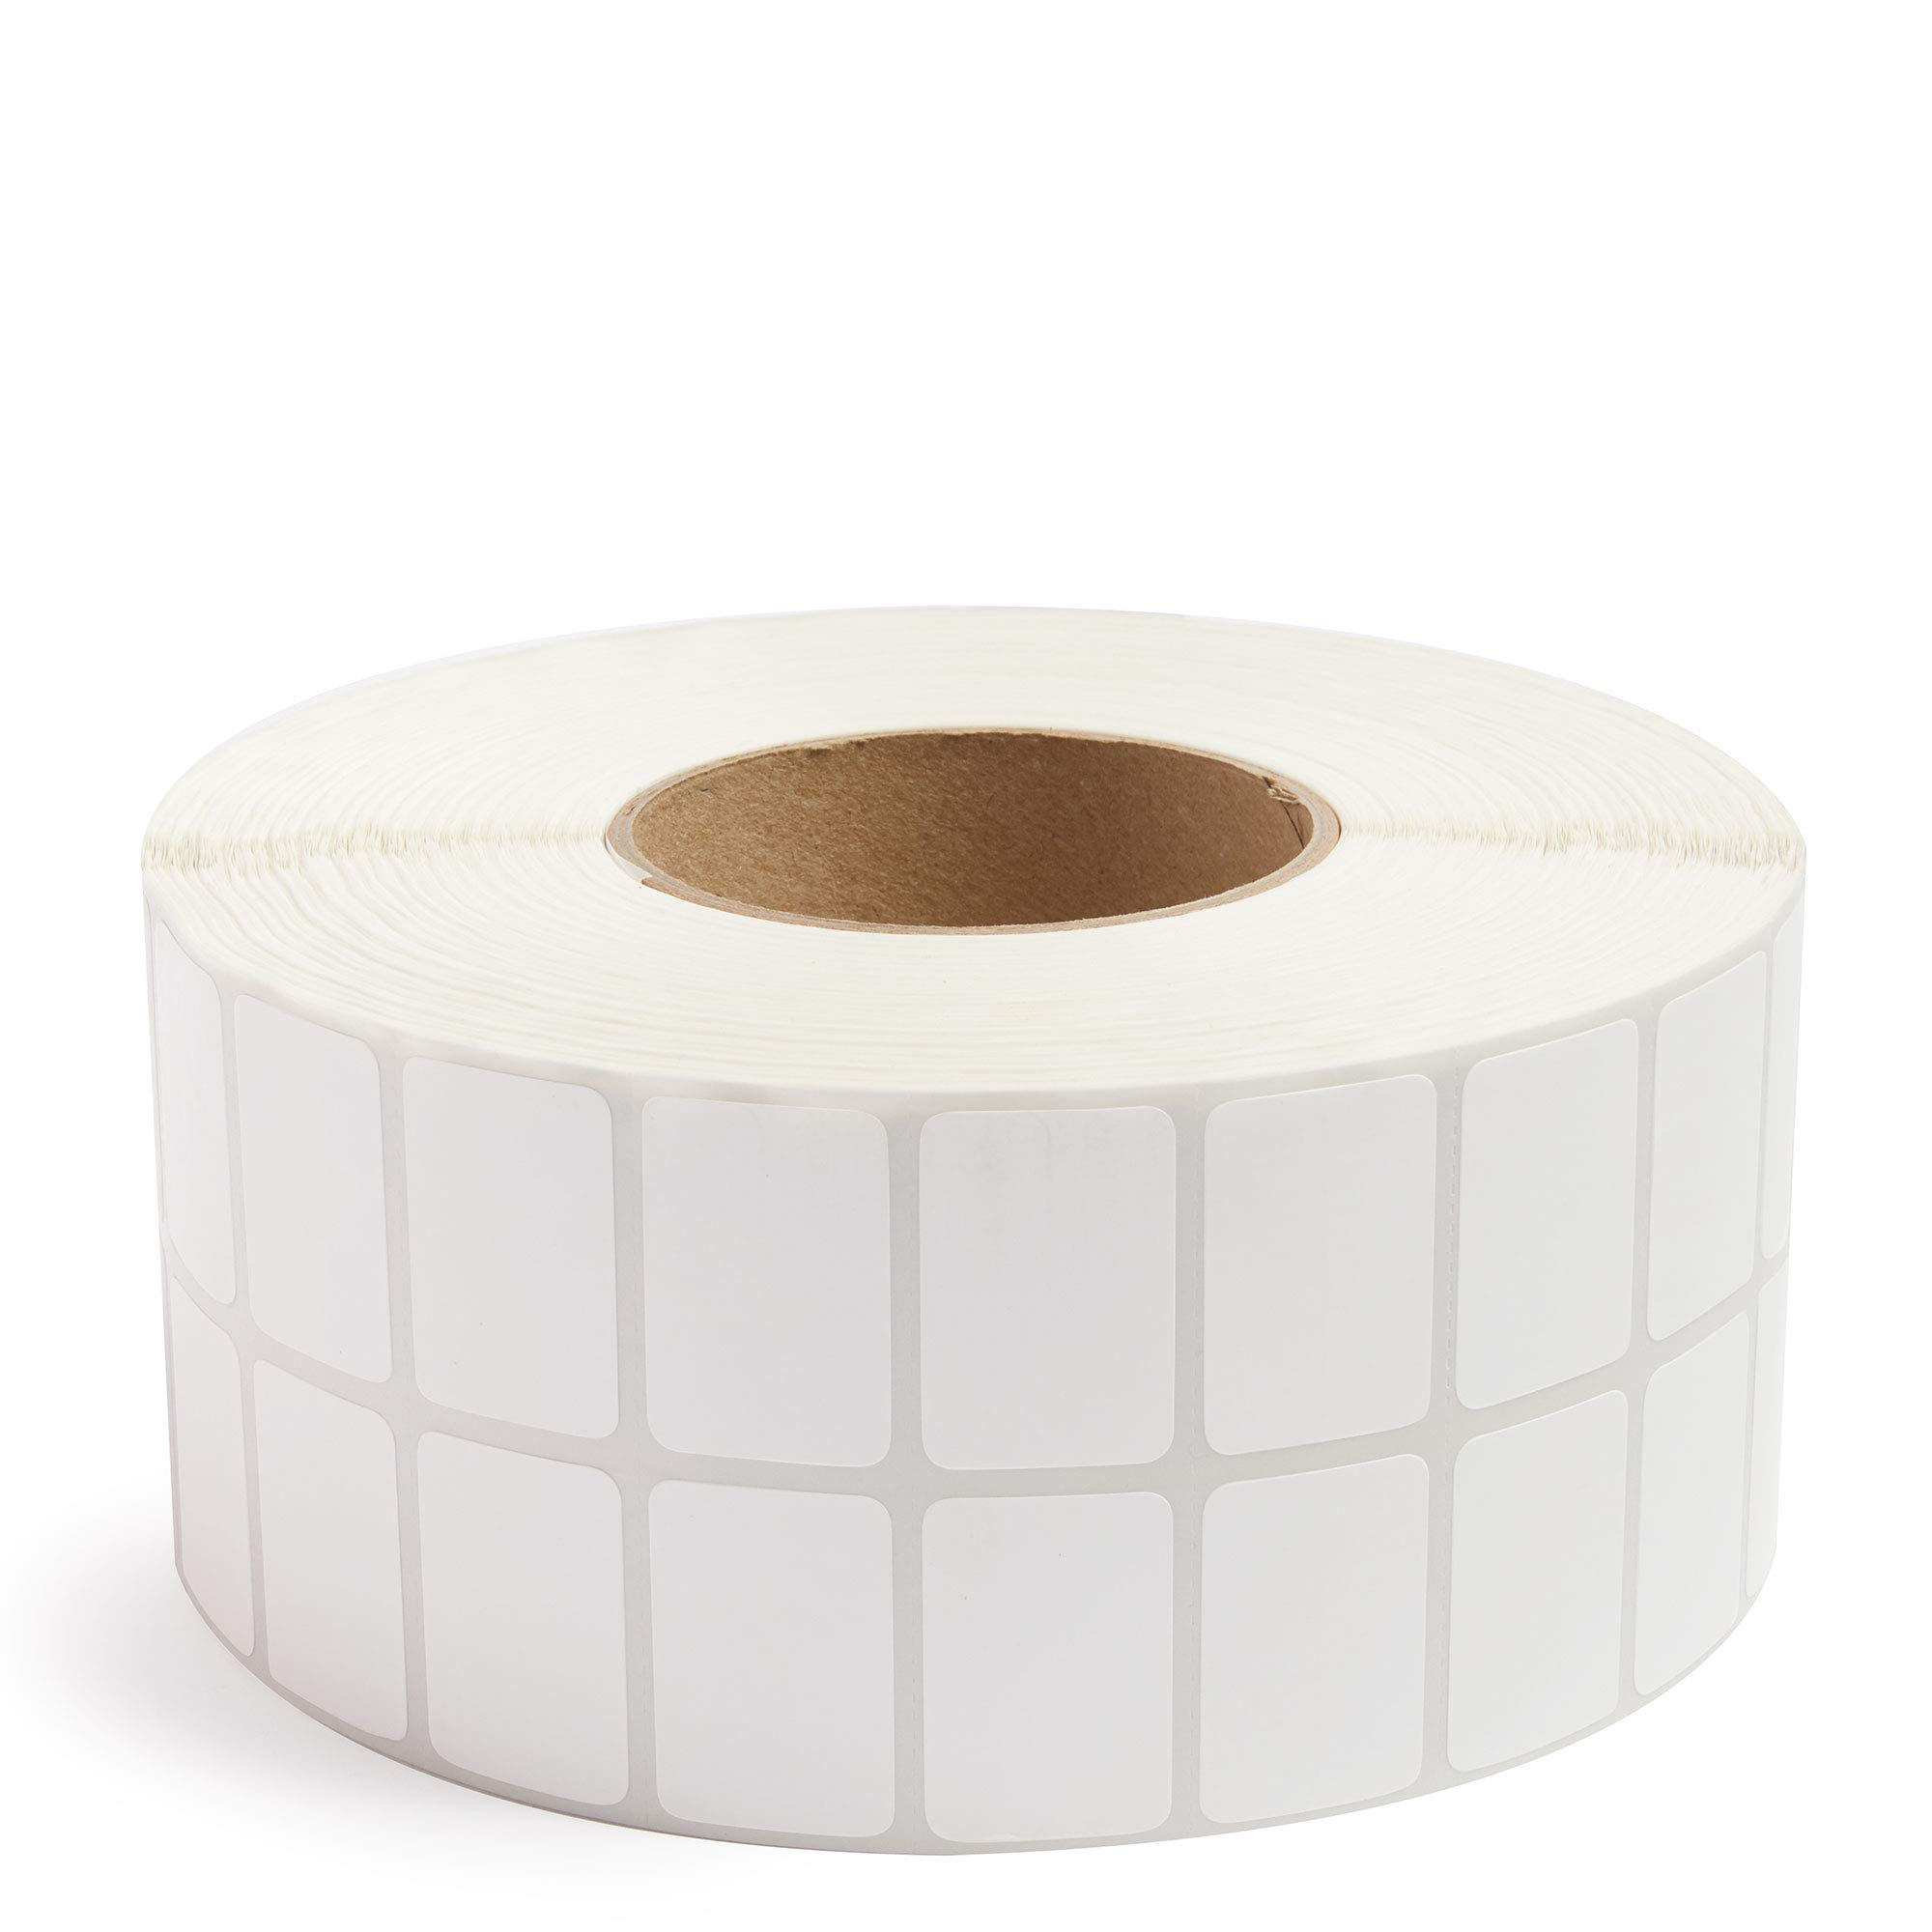 Smith Corona - 1.5 x 1 (2-Up) Thermal Transfer Labels (3'' Core) - 10800 Labels/Roll - 4 Rolls by Smith Corona